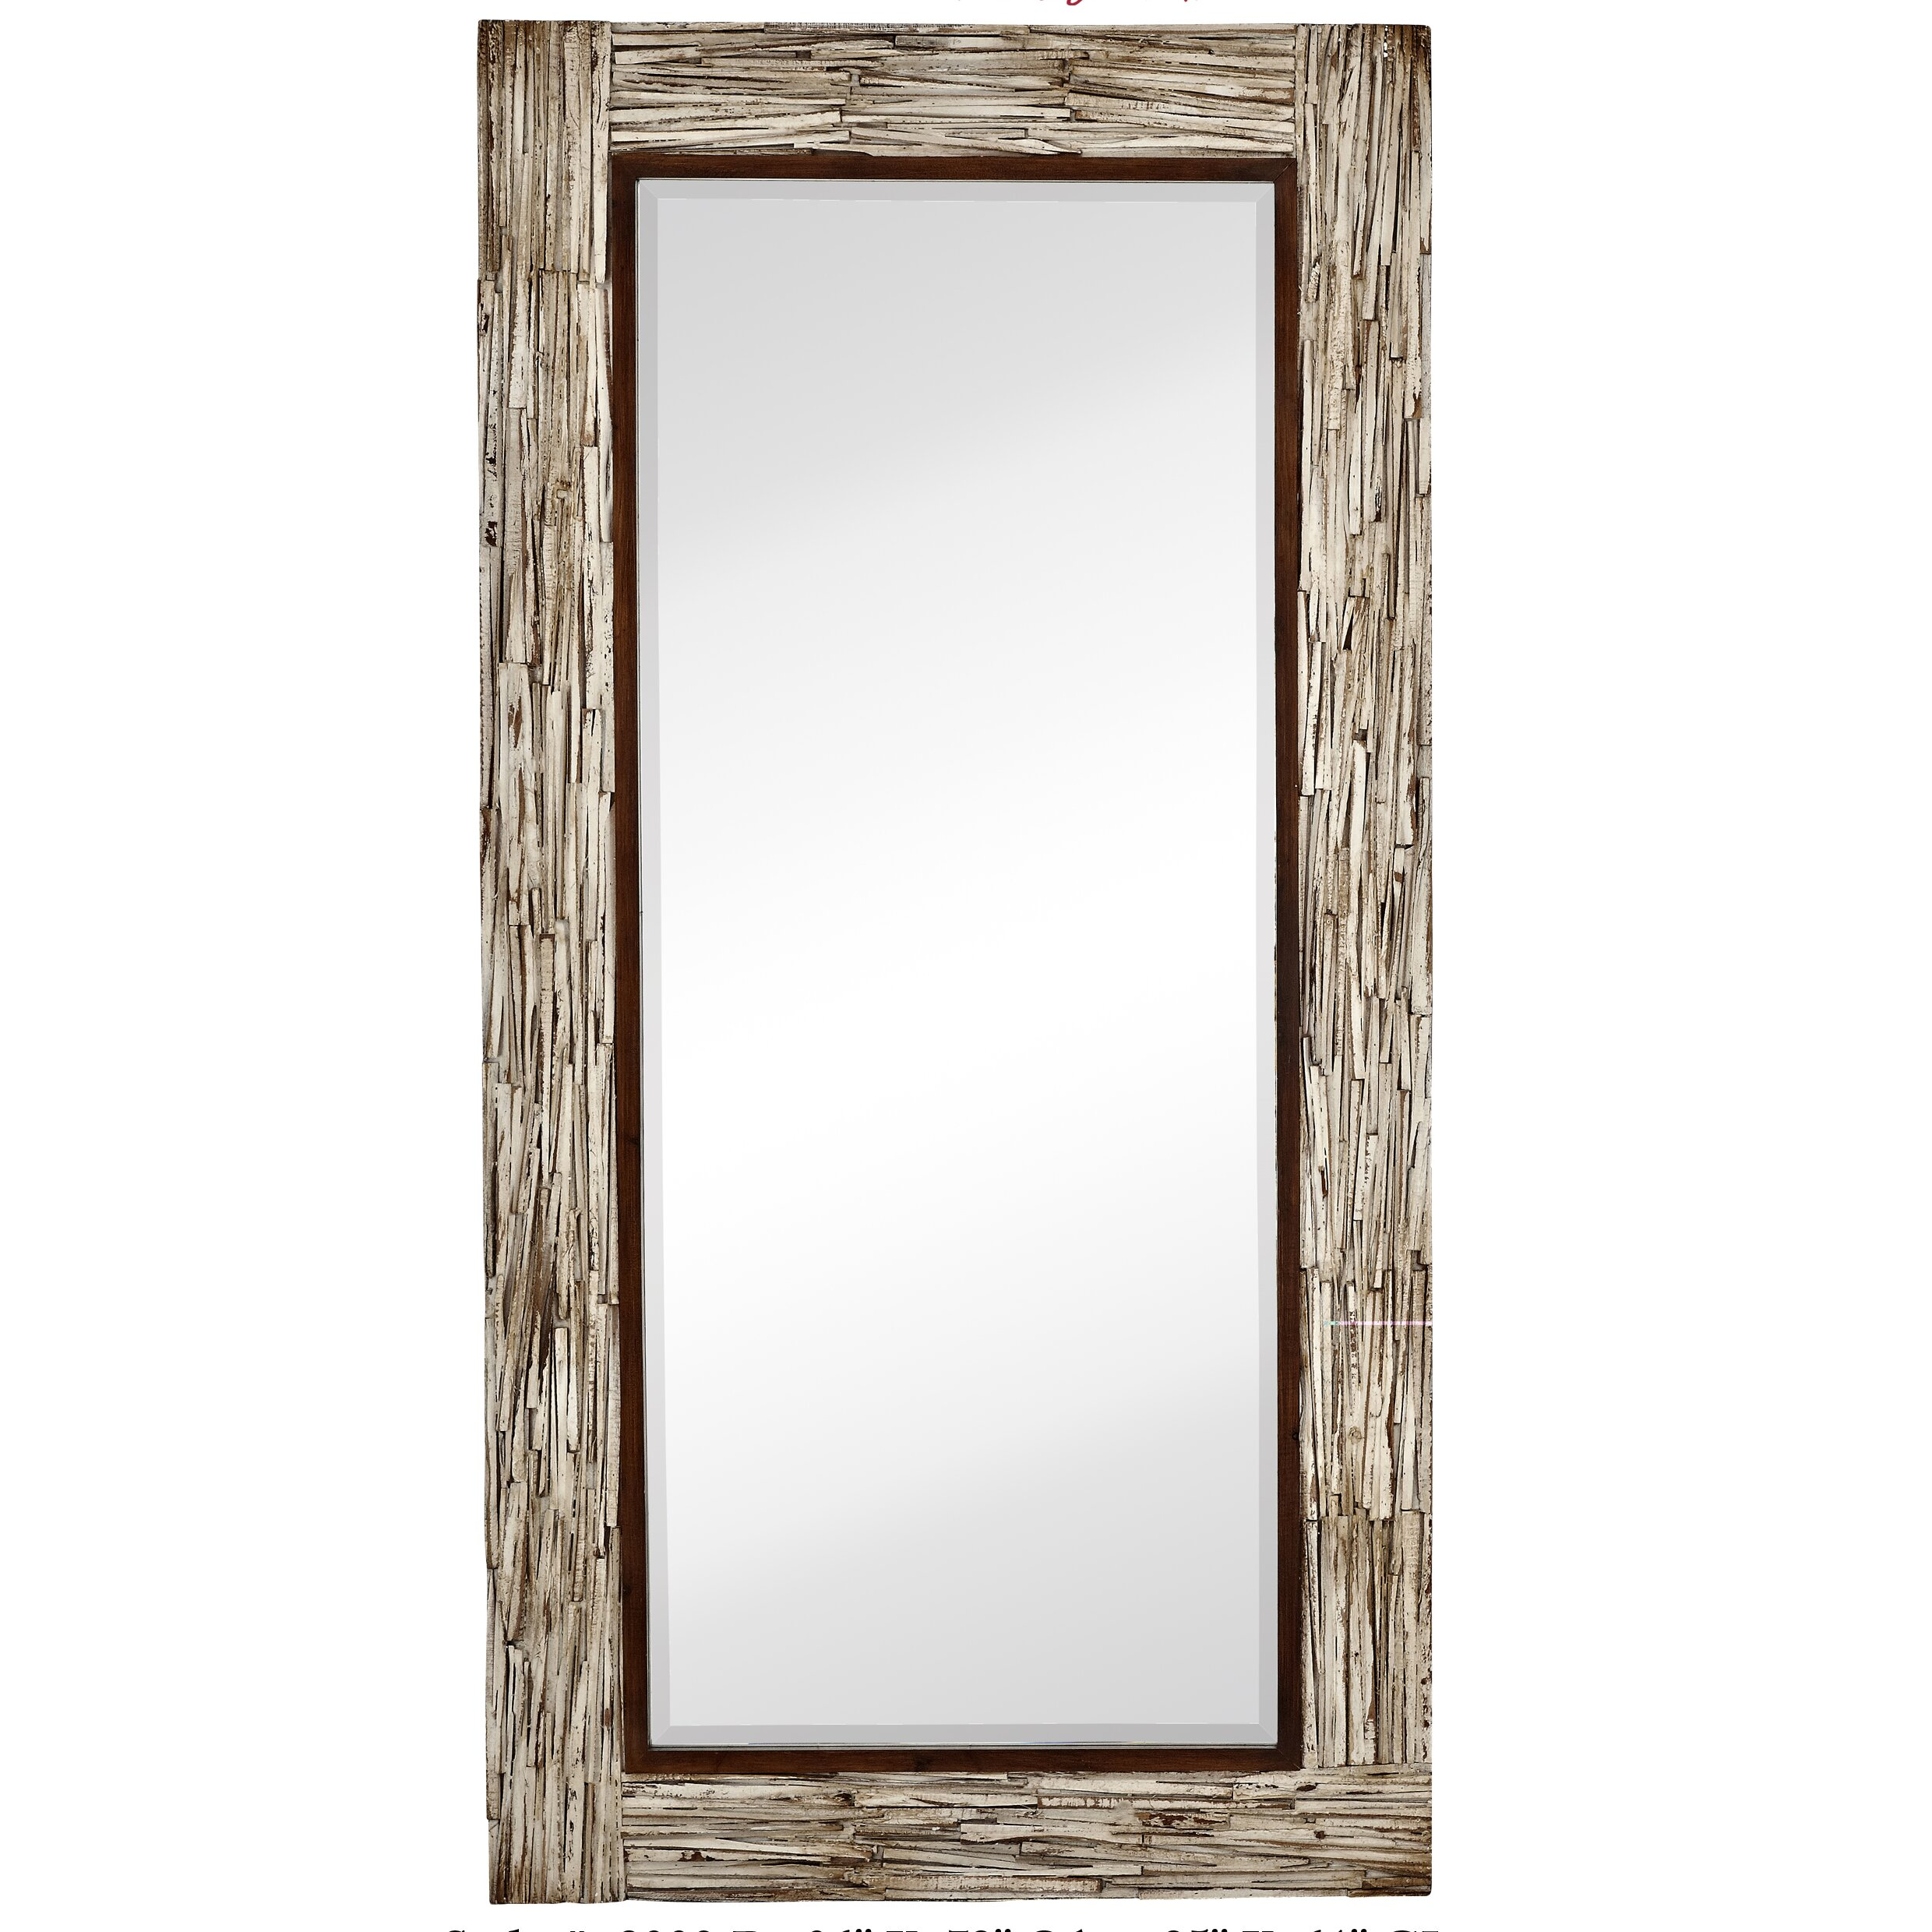 Majestic Mirror Large Rectangular White Washed Wood Framed